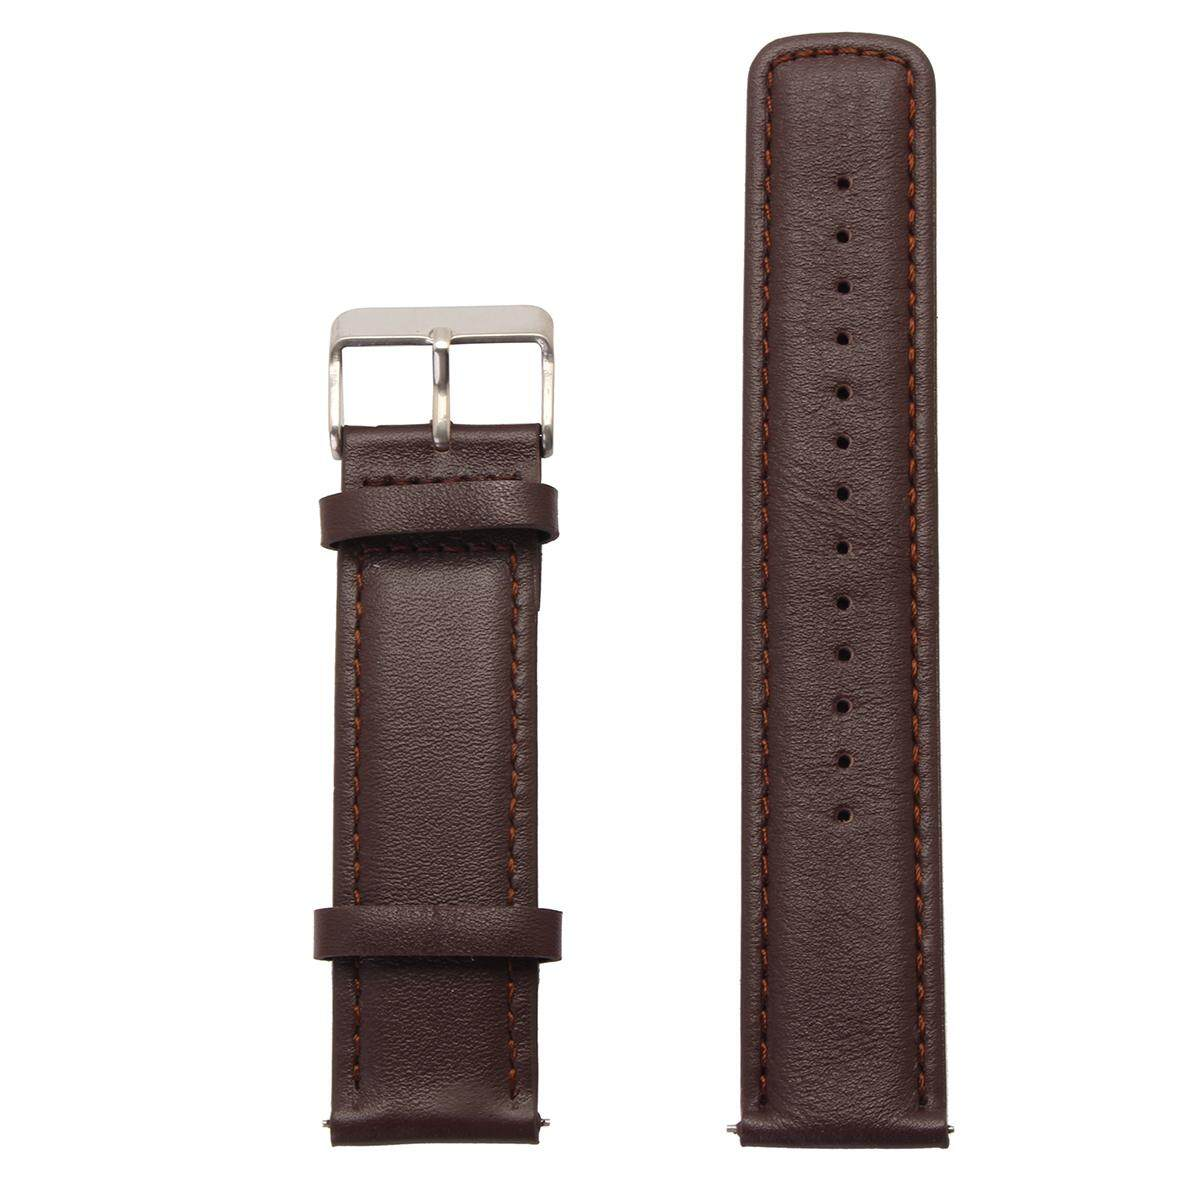 Fitur 22mm Leather Watch Band Strap Bracelet Pebble Time Steel For